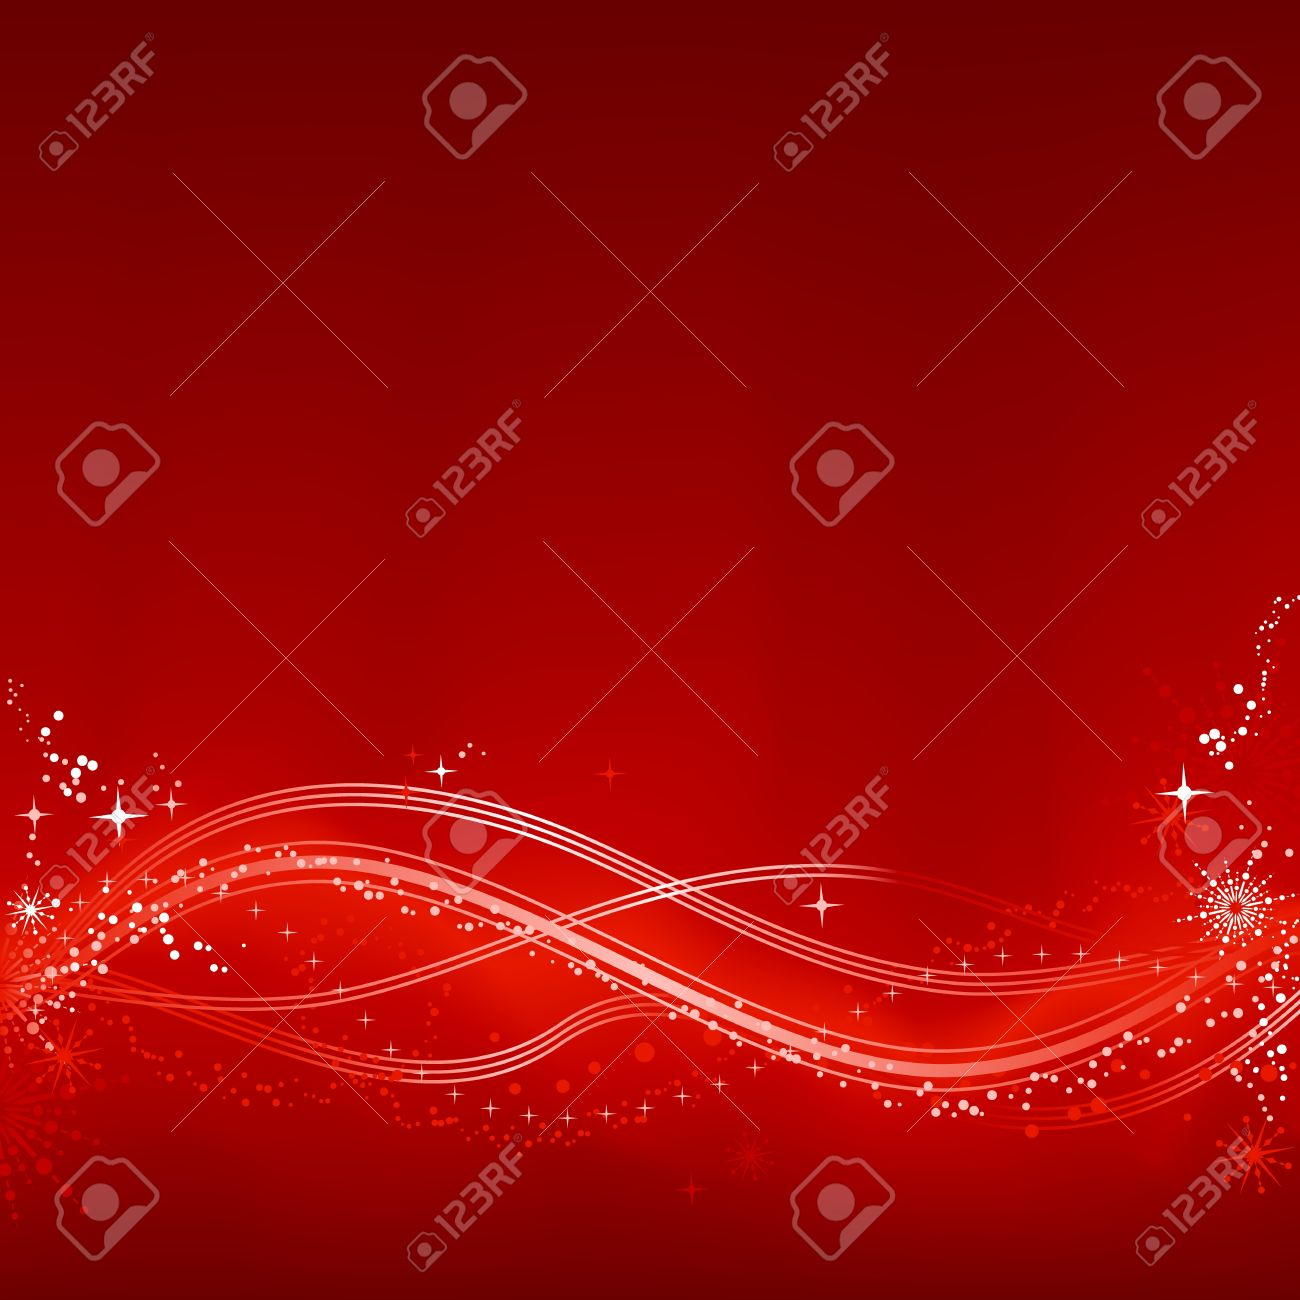 Square red white abstract Christmas background with stars, snow flakes, stars and grunge elements. Background made by blend with clipping mask, use of 7 global color swatches. Stock Vector - 5849194